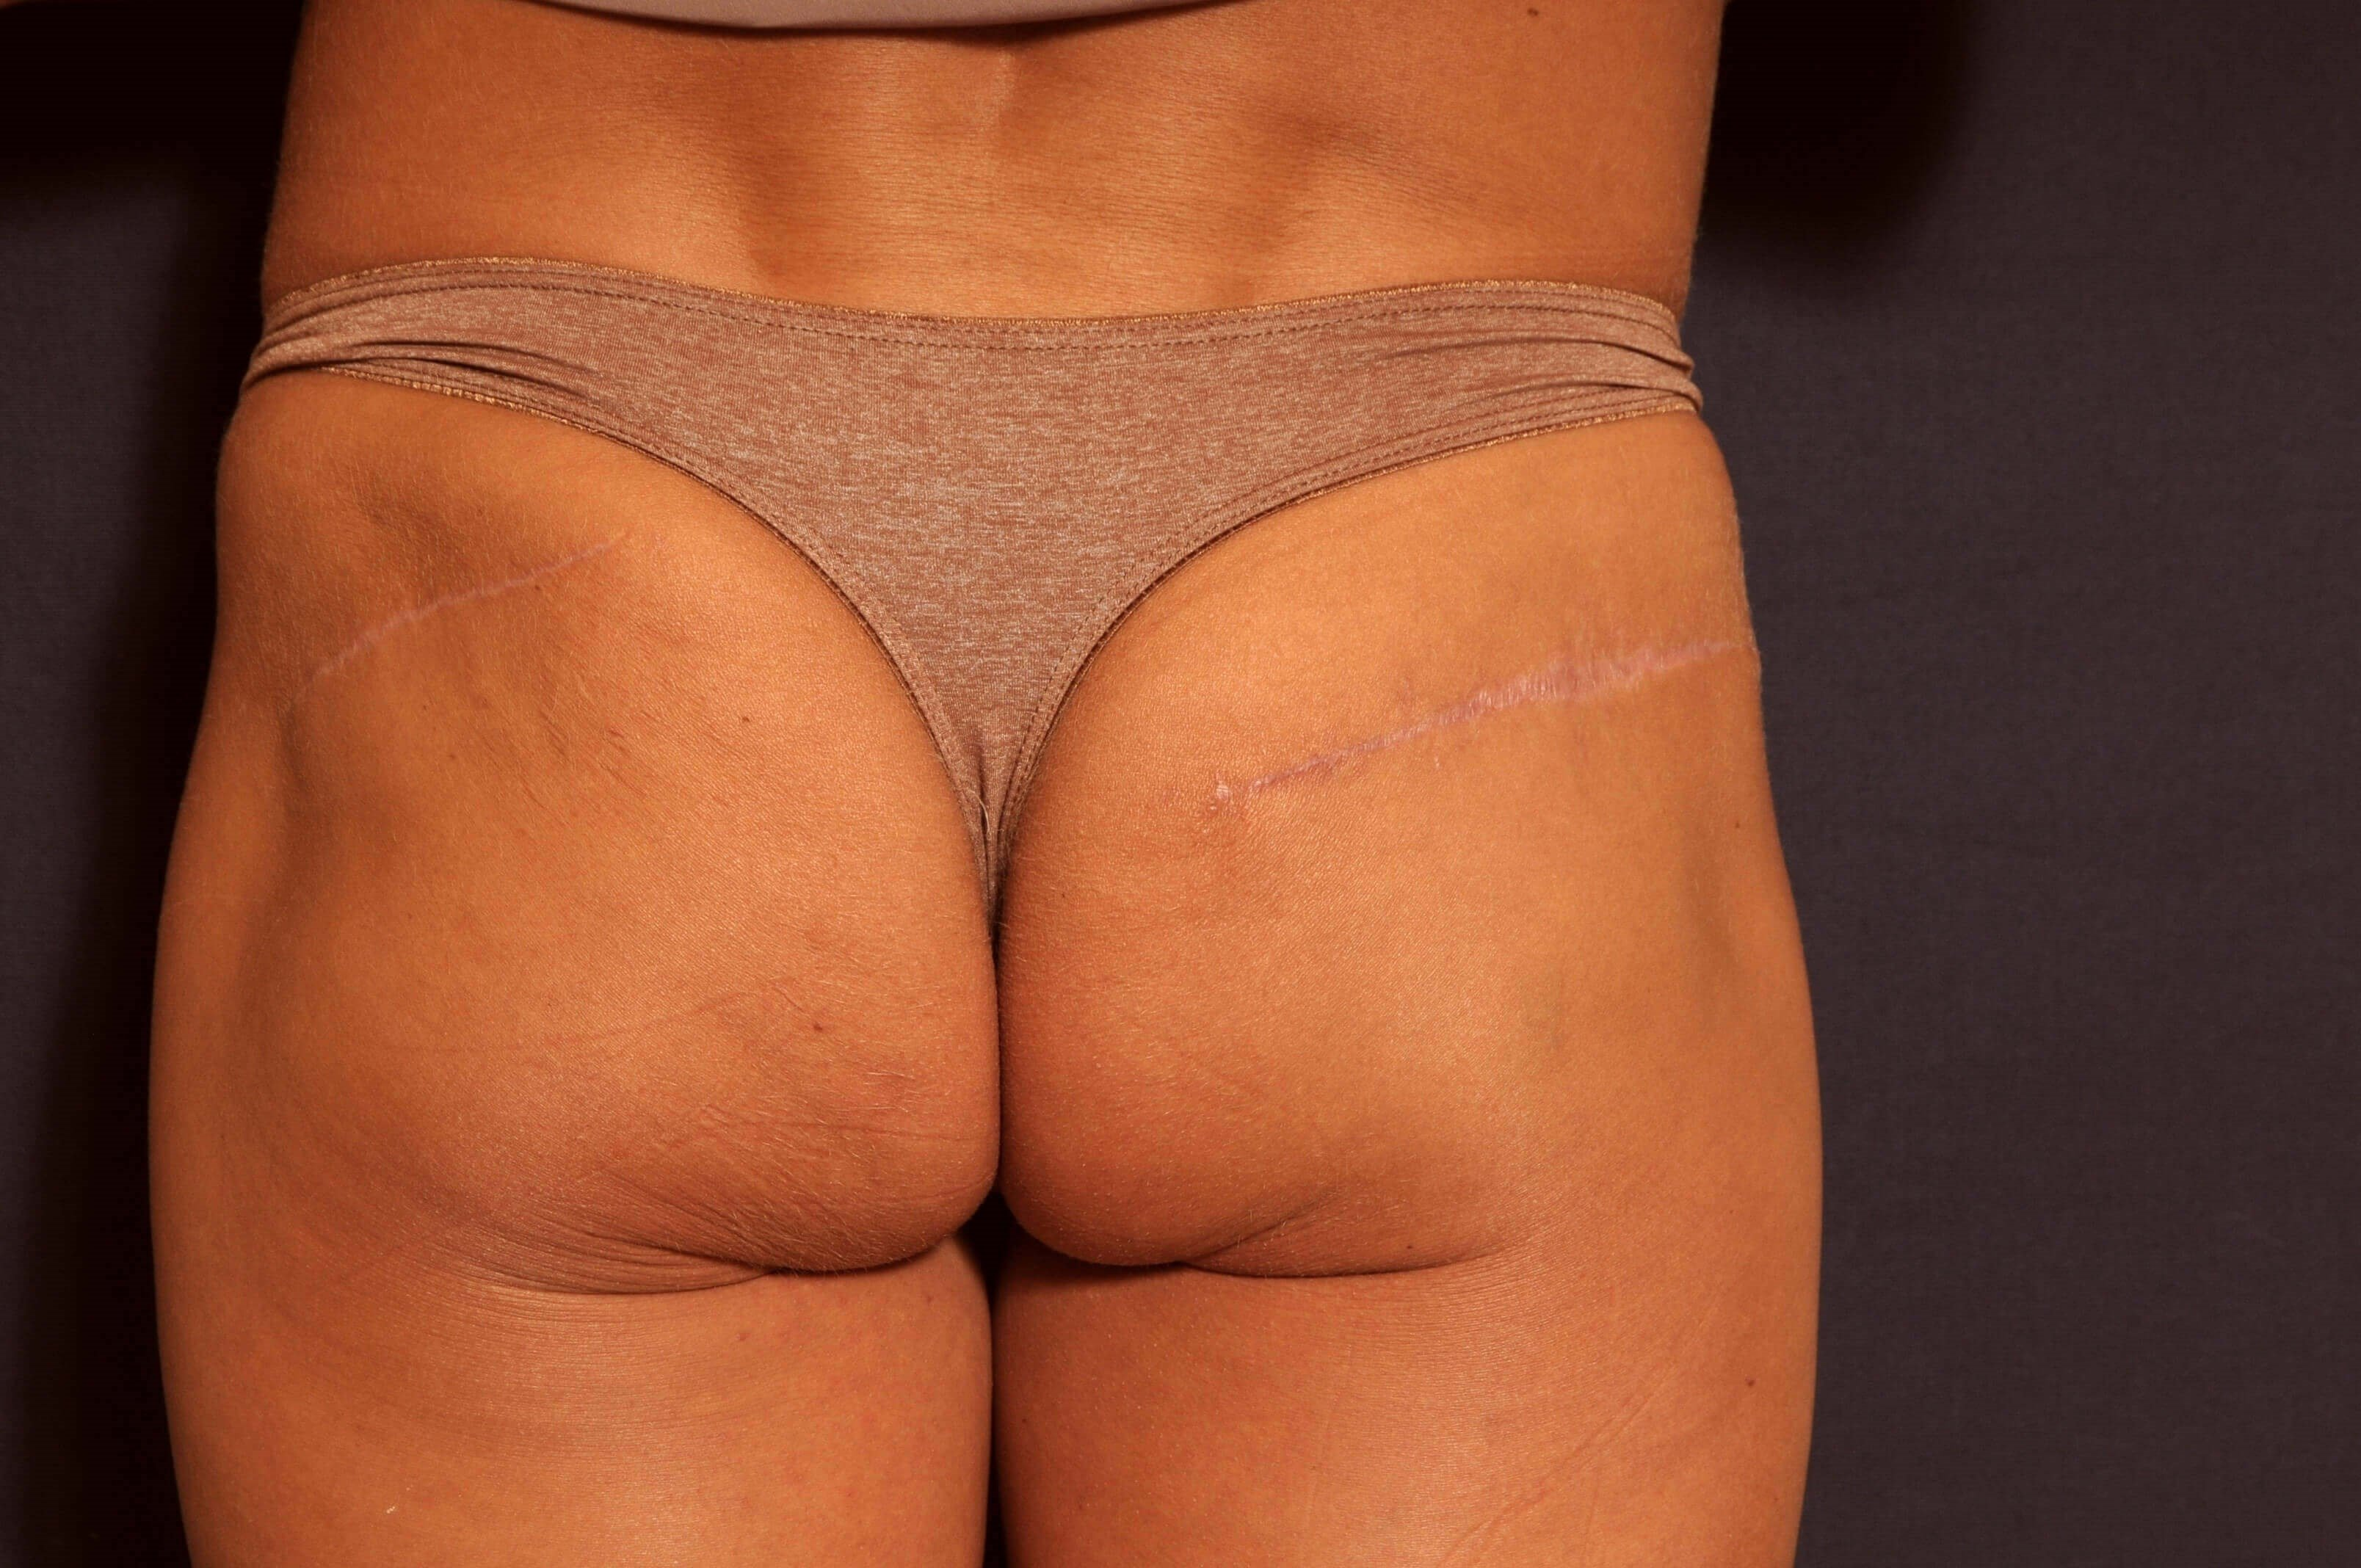 Buttock Scar Revision/Excision Procedure 2 After